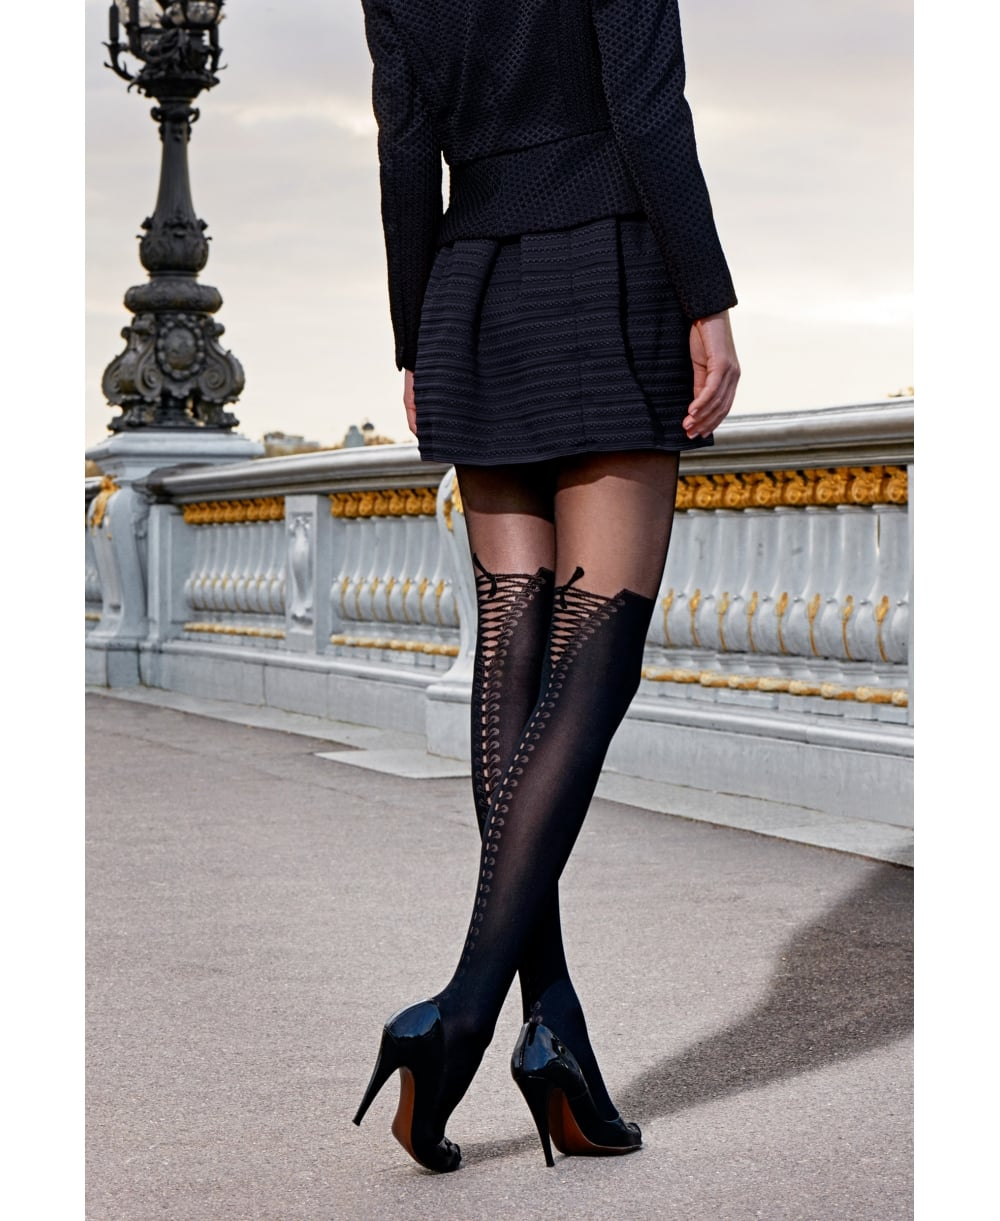 gerbe-cuissardes-boot-effect-tights-p1561-38506_image (1).jpg